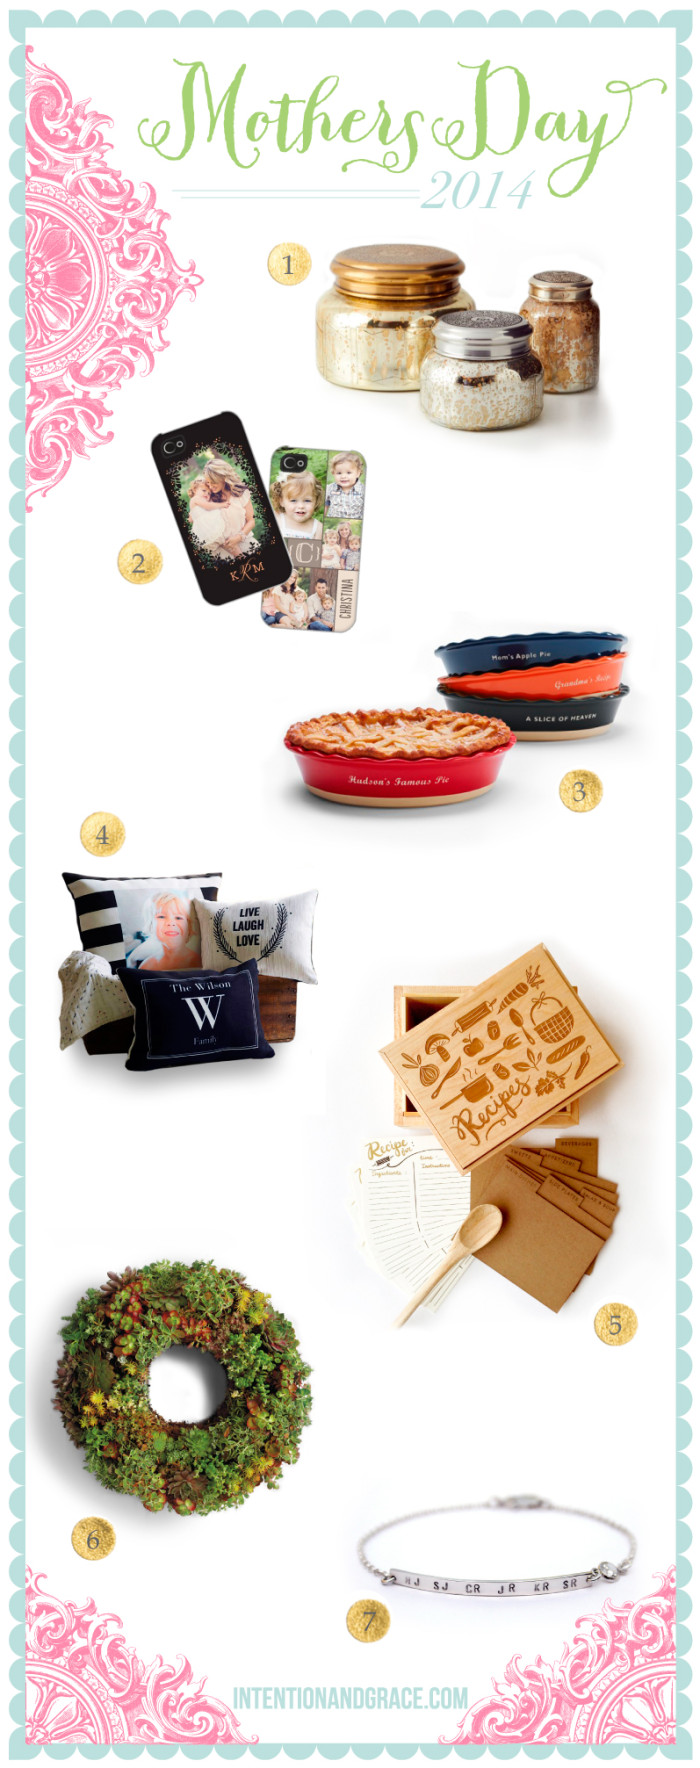 Great Mothers Day 2014 Gift Ideas for Grandmothers, Step Mothers, Mother-in-law and all moms alike  |  Intentionandgrace.com